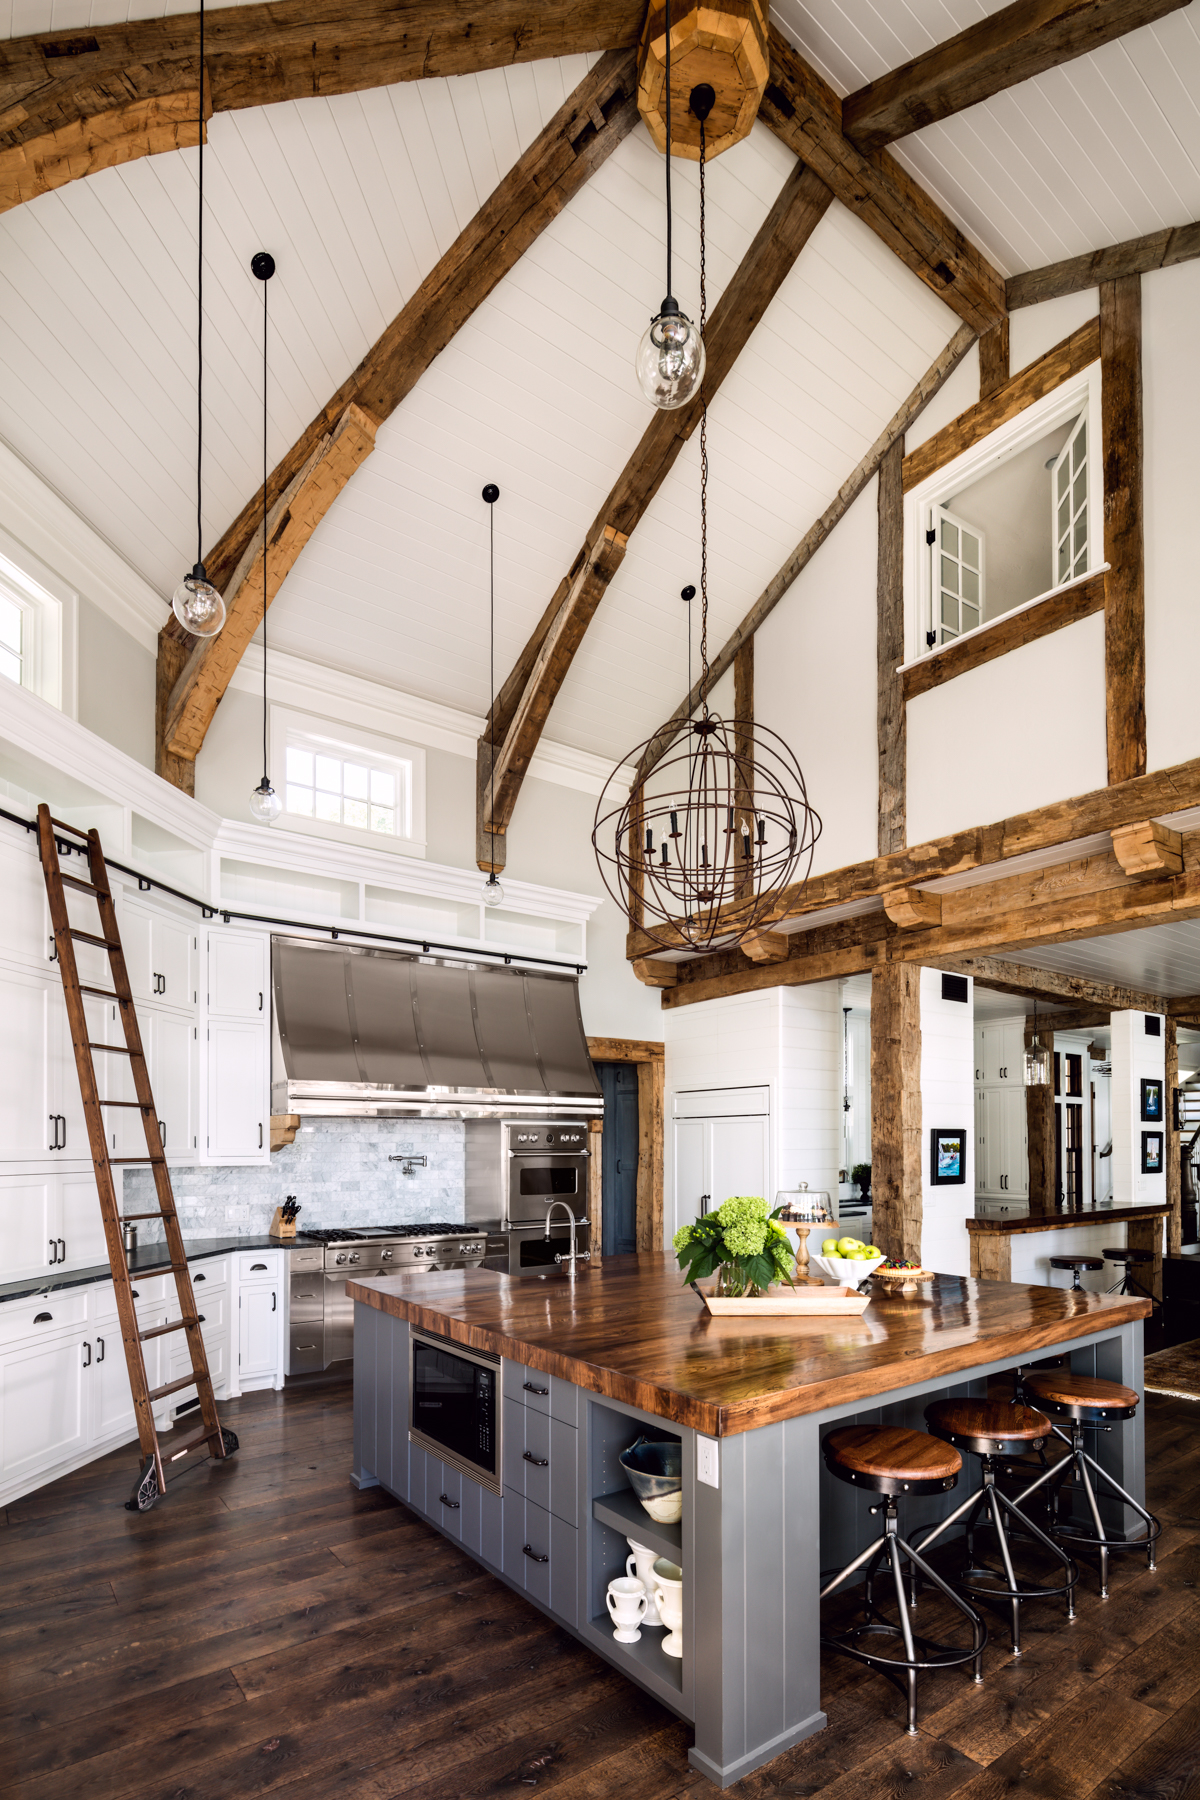 Double height, shaped kitchen ceiling with heavy timber beams by Wade Weissmann Architecture Inc.